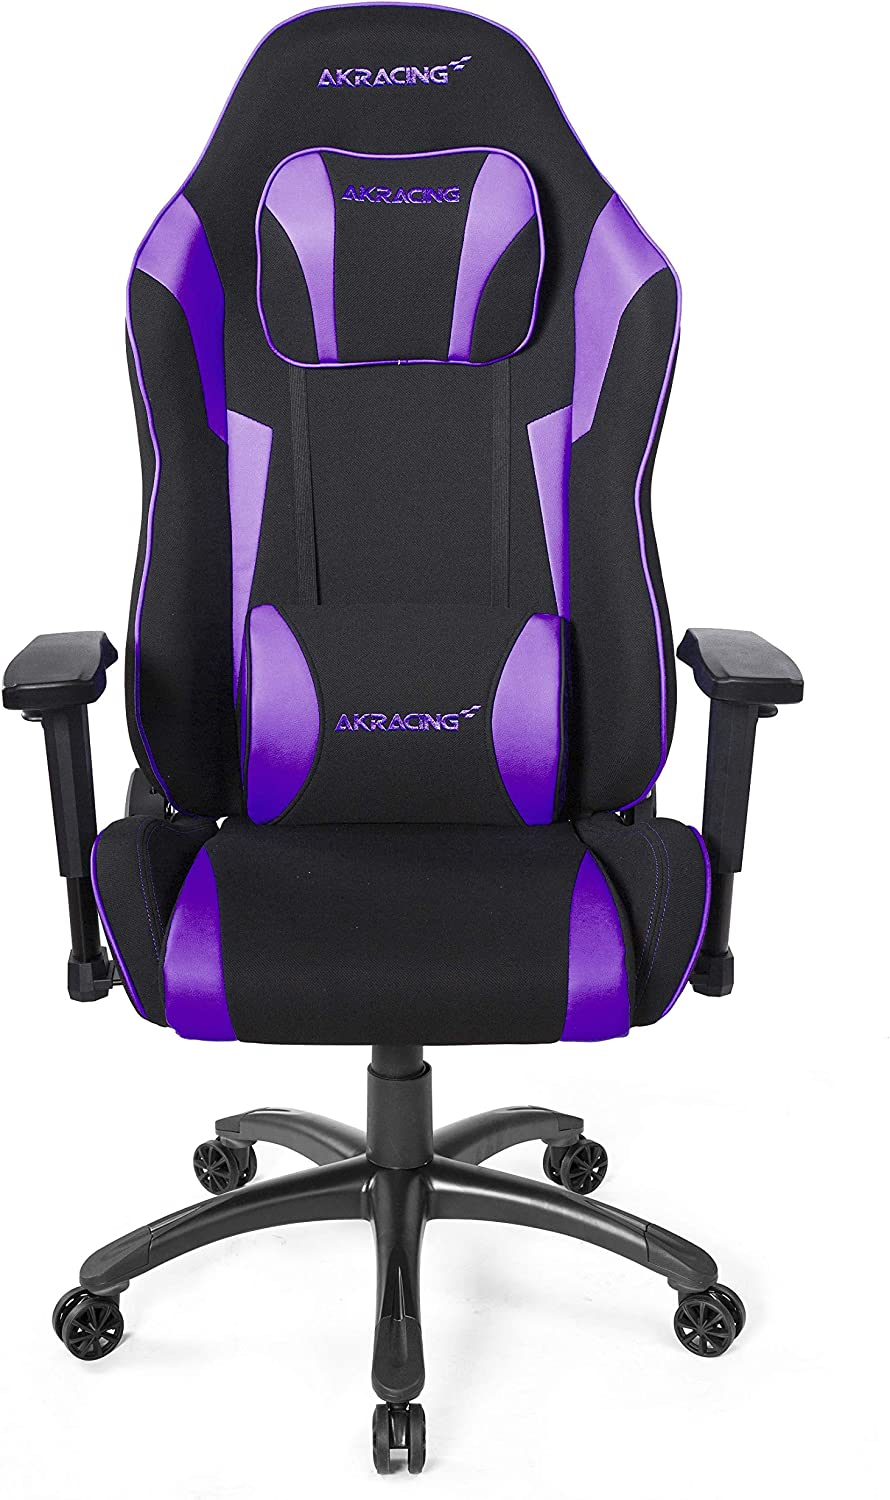 AKRacing Core Series EX-Wide SE Ergonomic Purple Gaming Chair with Wide Seat, 330 Lbs Weight Limit, Rocker and Seat Height Adjustment Mechanisms with 5/10 Warranty